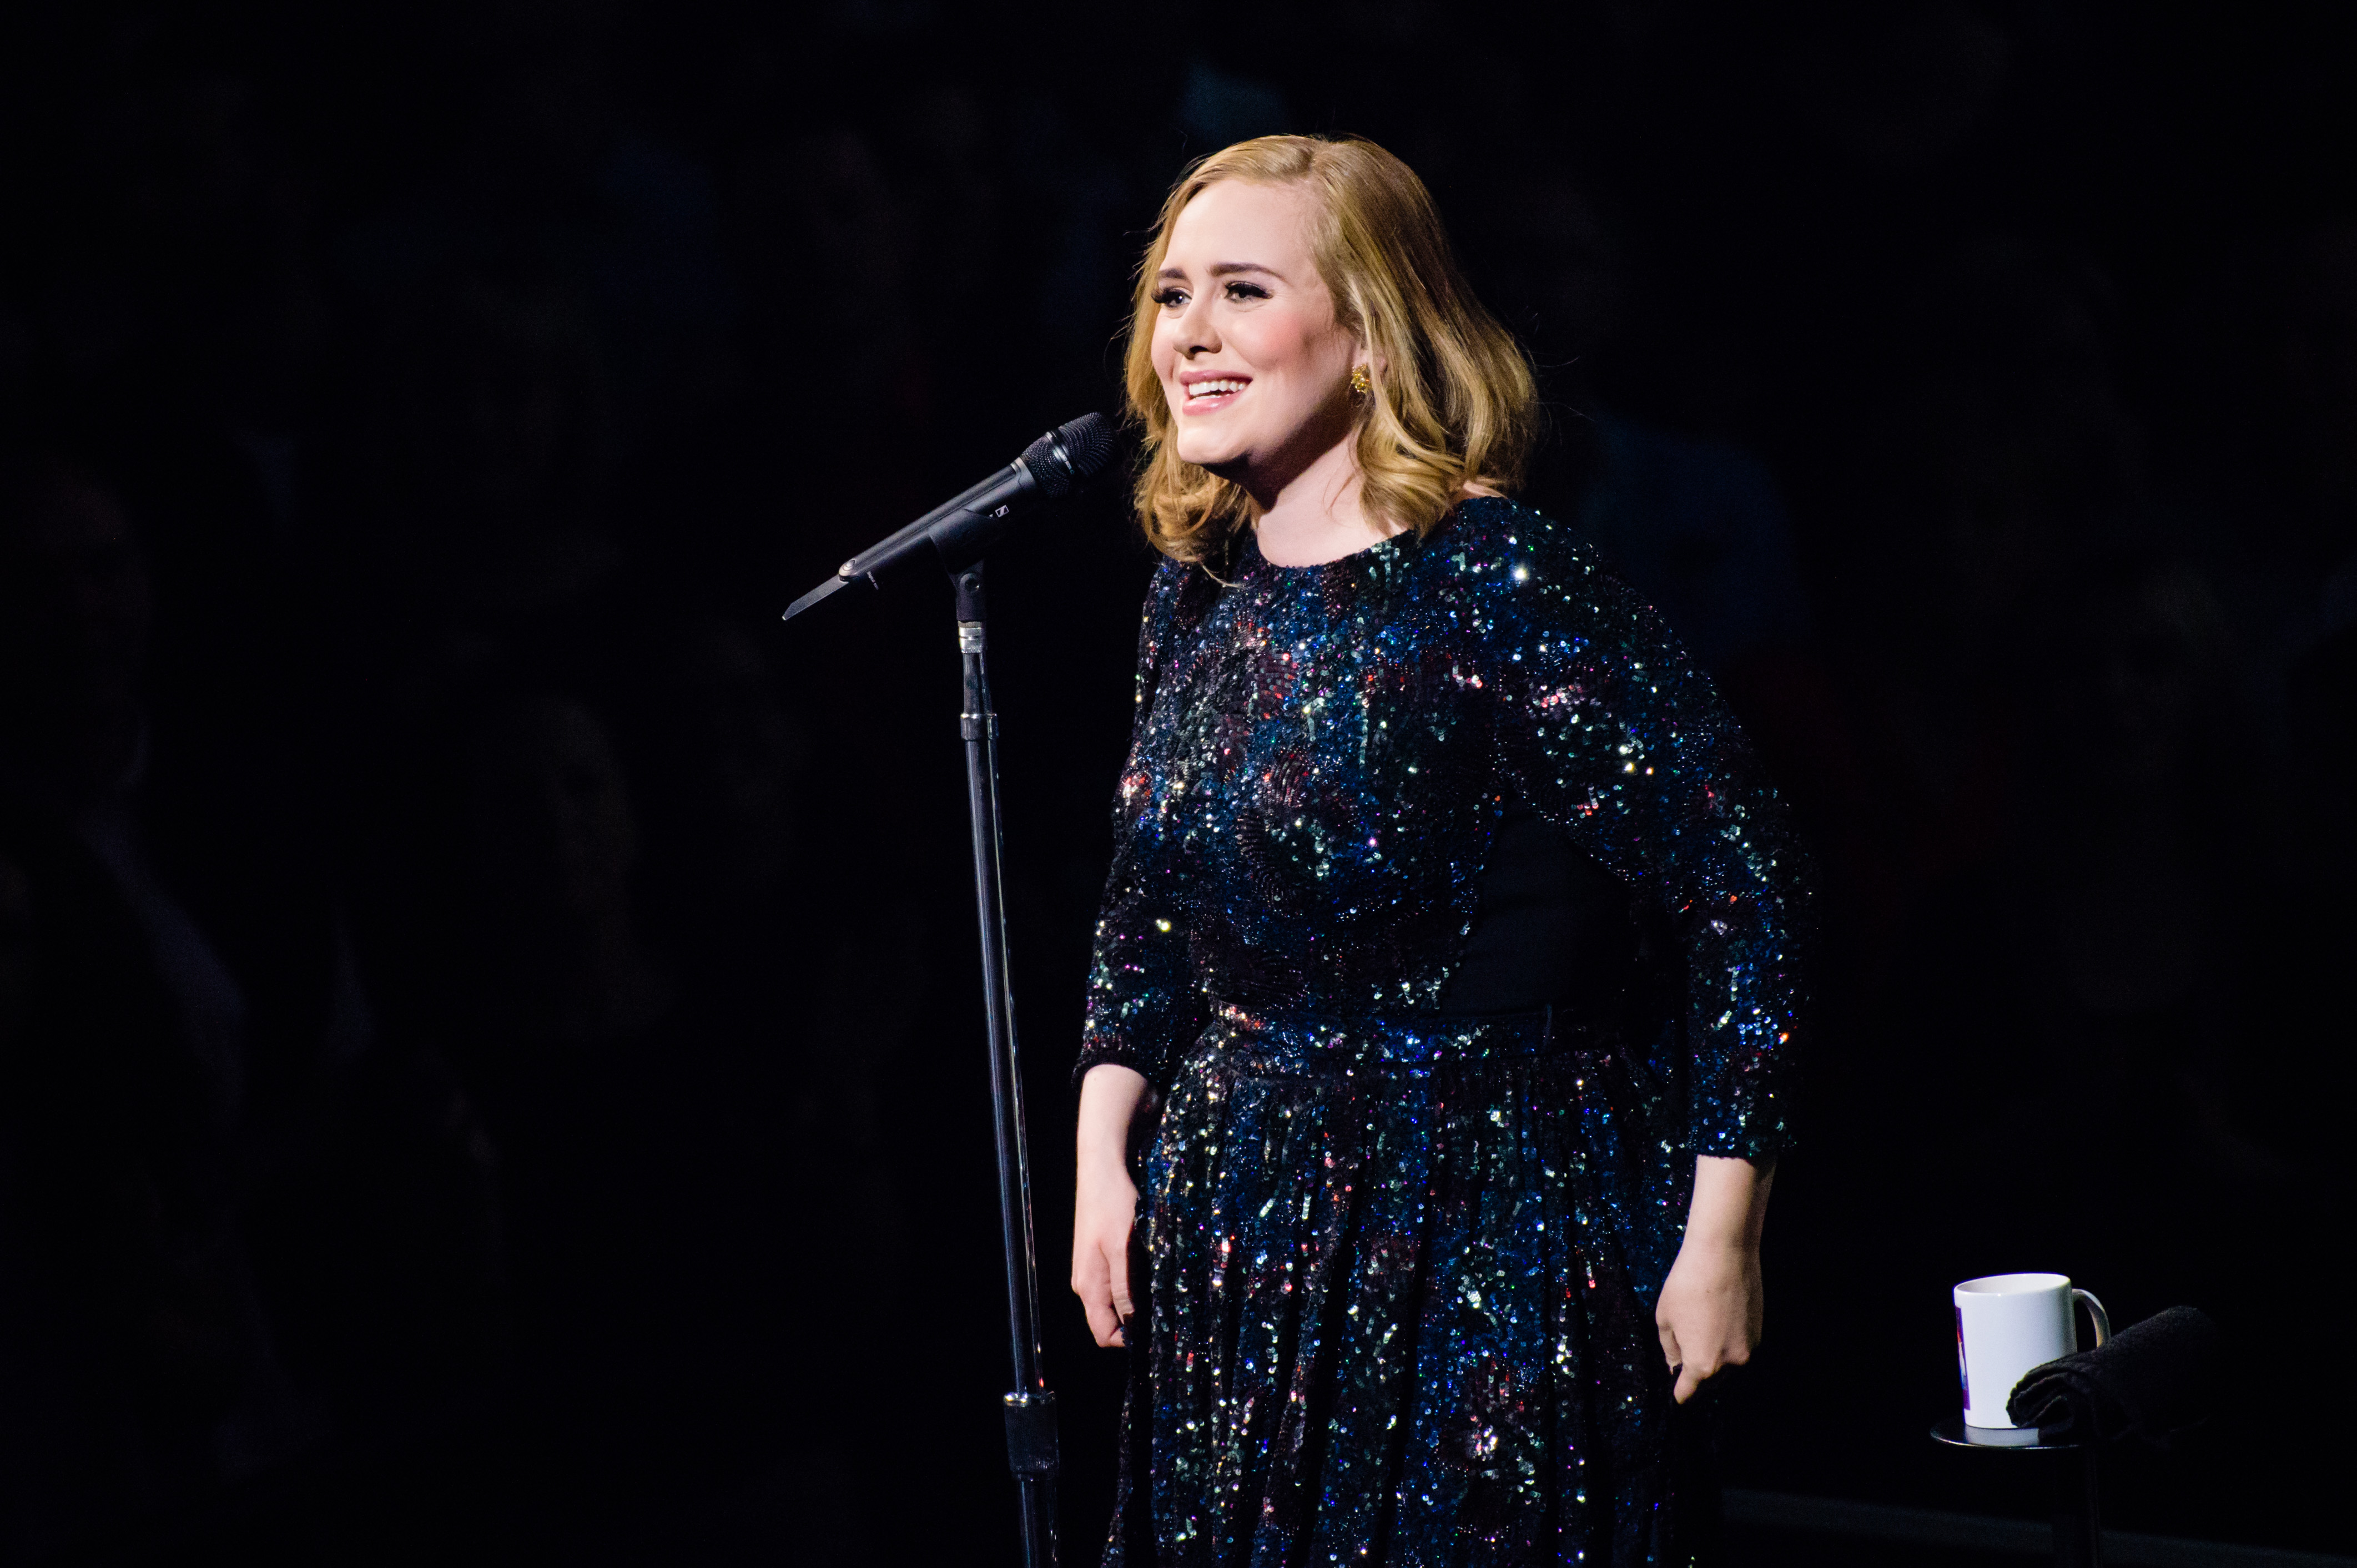 Singer Adele performs live on stage during a concert at Mercedes-Benz Arena on May 07, 2016 in Berlin, Germany.